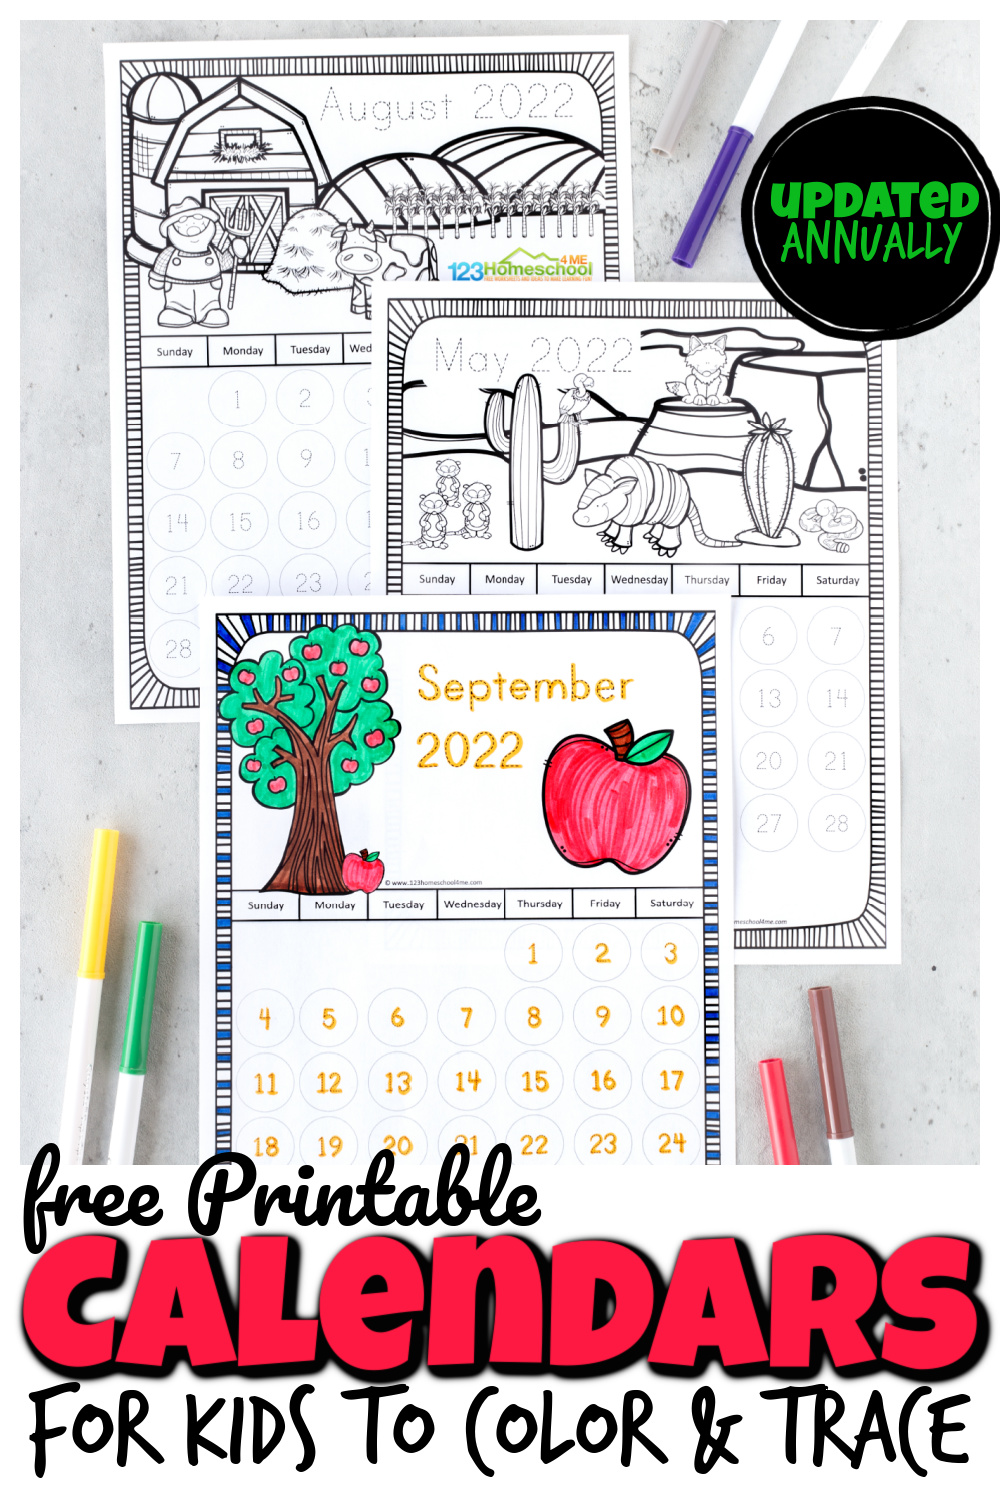 Kids will have fun learning how a calendar works with thesefree printable traceable calendars with super cute seasonal pictures at the top to color. These traceable calendars are perfect to save you on printing costs and allow your toddler, preschool, pre-k, kindergarten, first grade, and 2nd grade student to colour the pages. Plus trace the numbers or stamp the days away with bingo daubers! Simply download pdf file with printable calendars for kids to grab your2021 calendar printableand2022 free calendar printable.